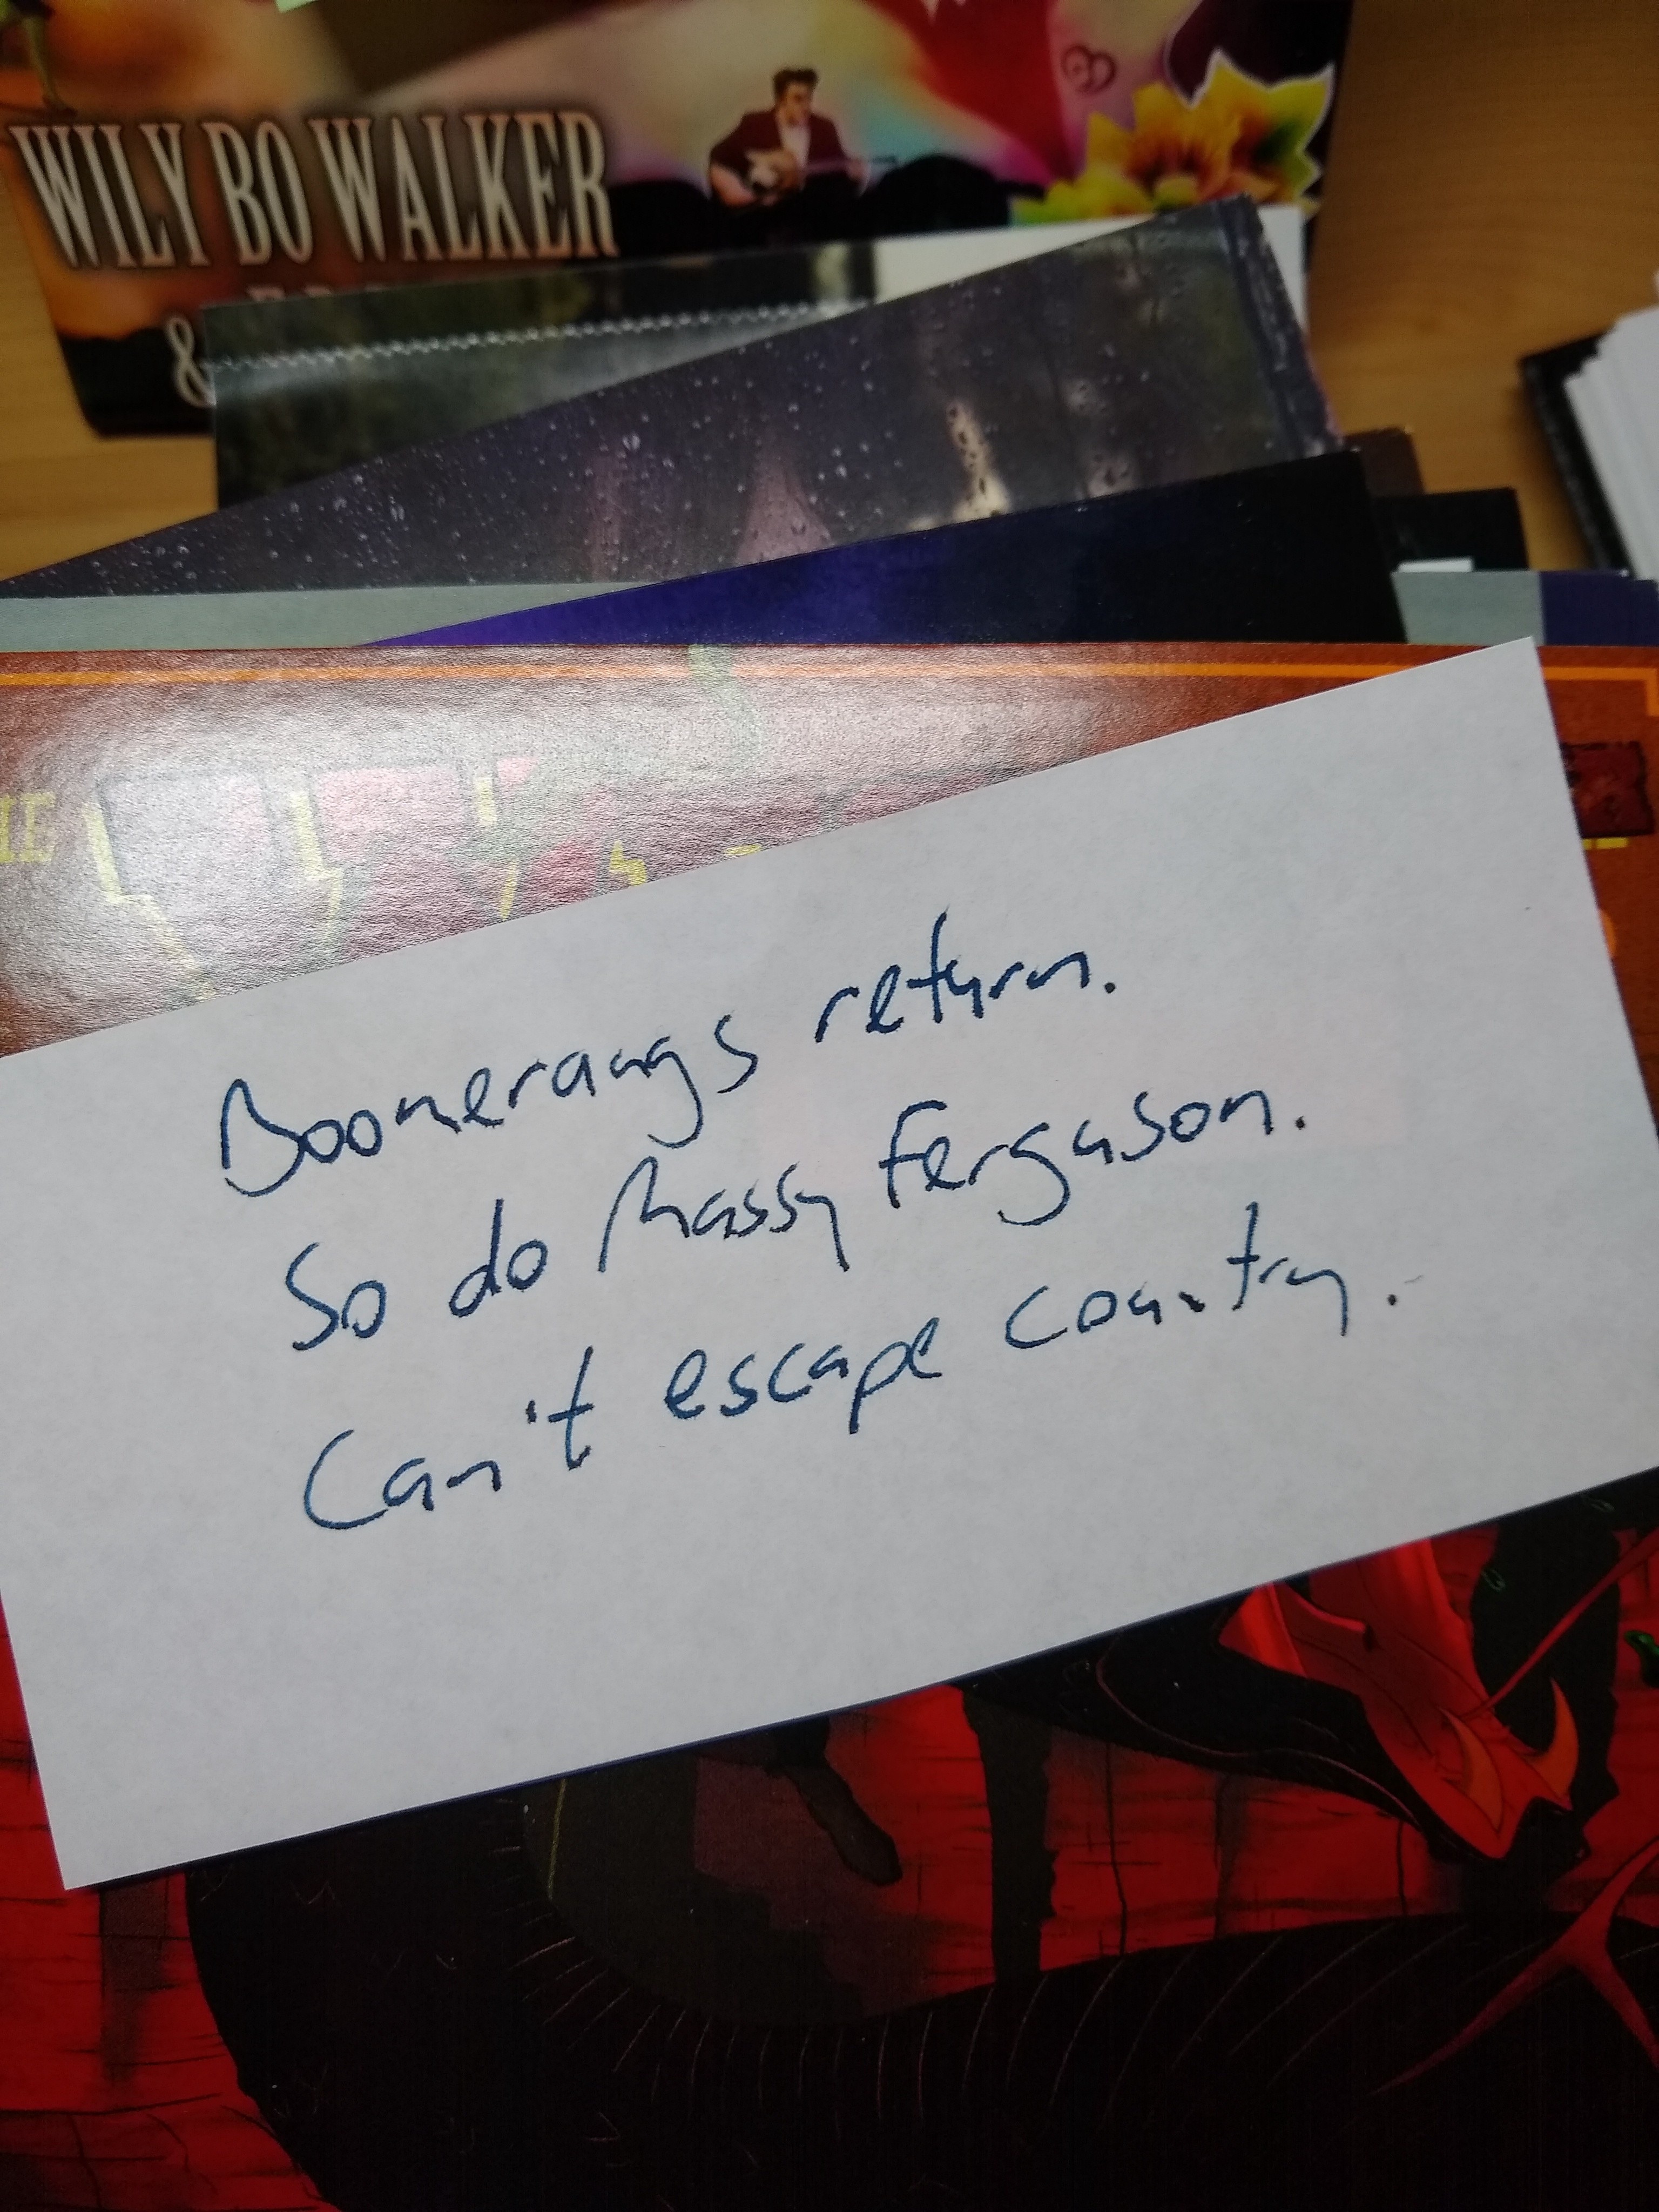 Haiku on a piece of paper: Boomerangs return. So do Massy Ferguson Can't escape country.